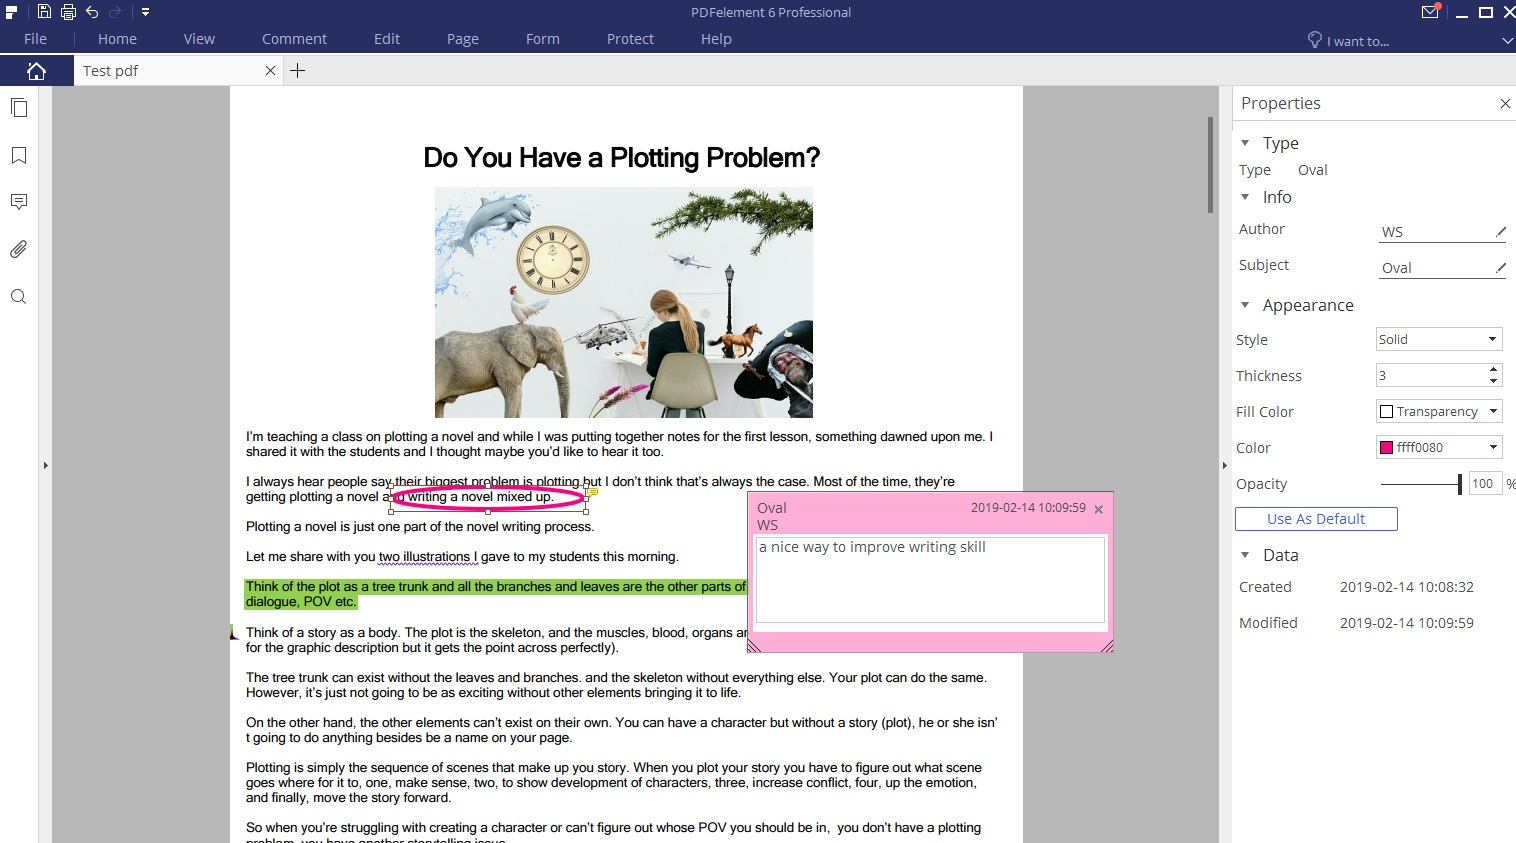 PDFelement editing tip